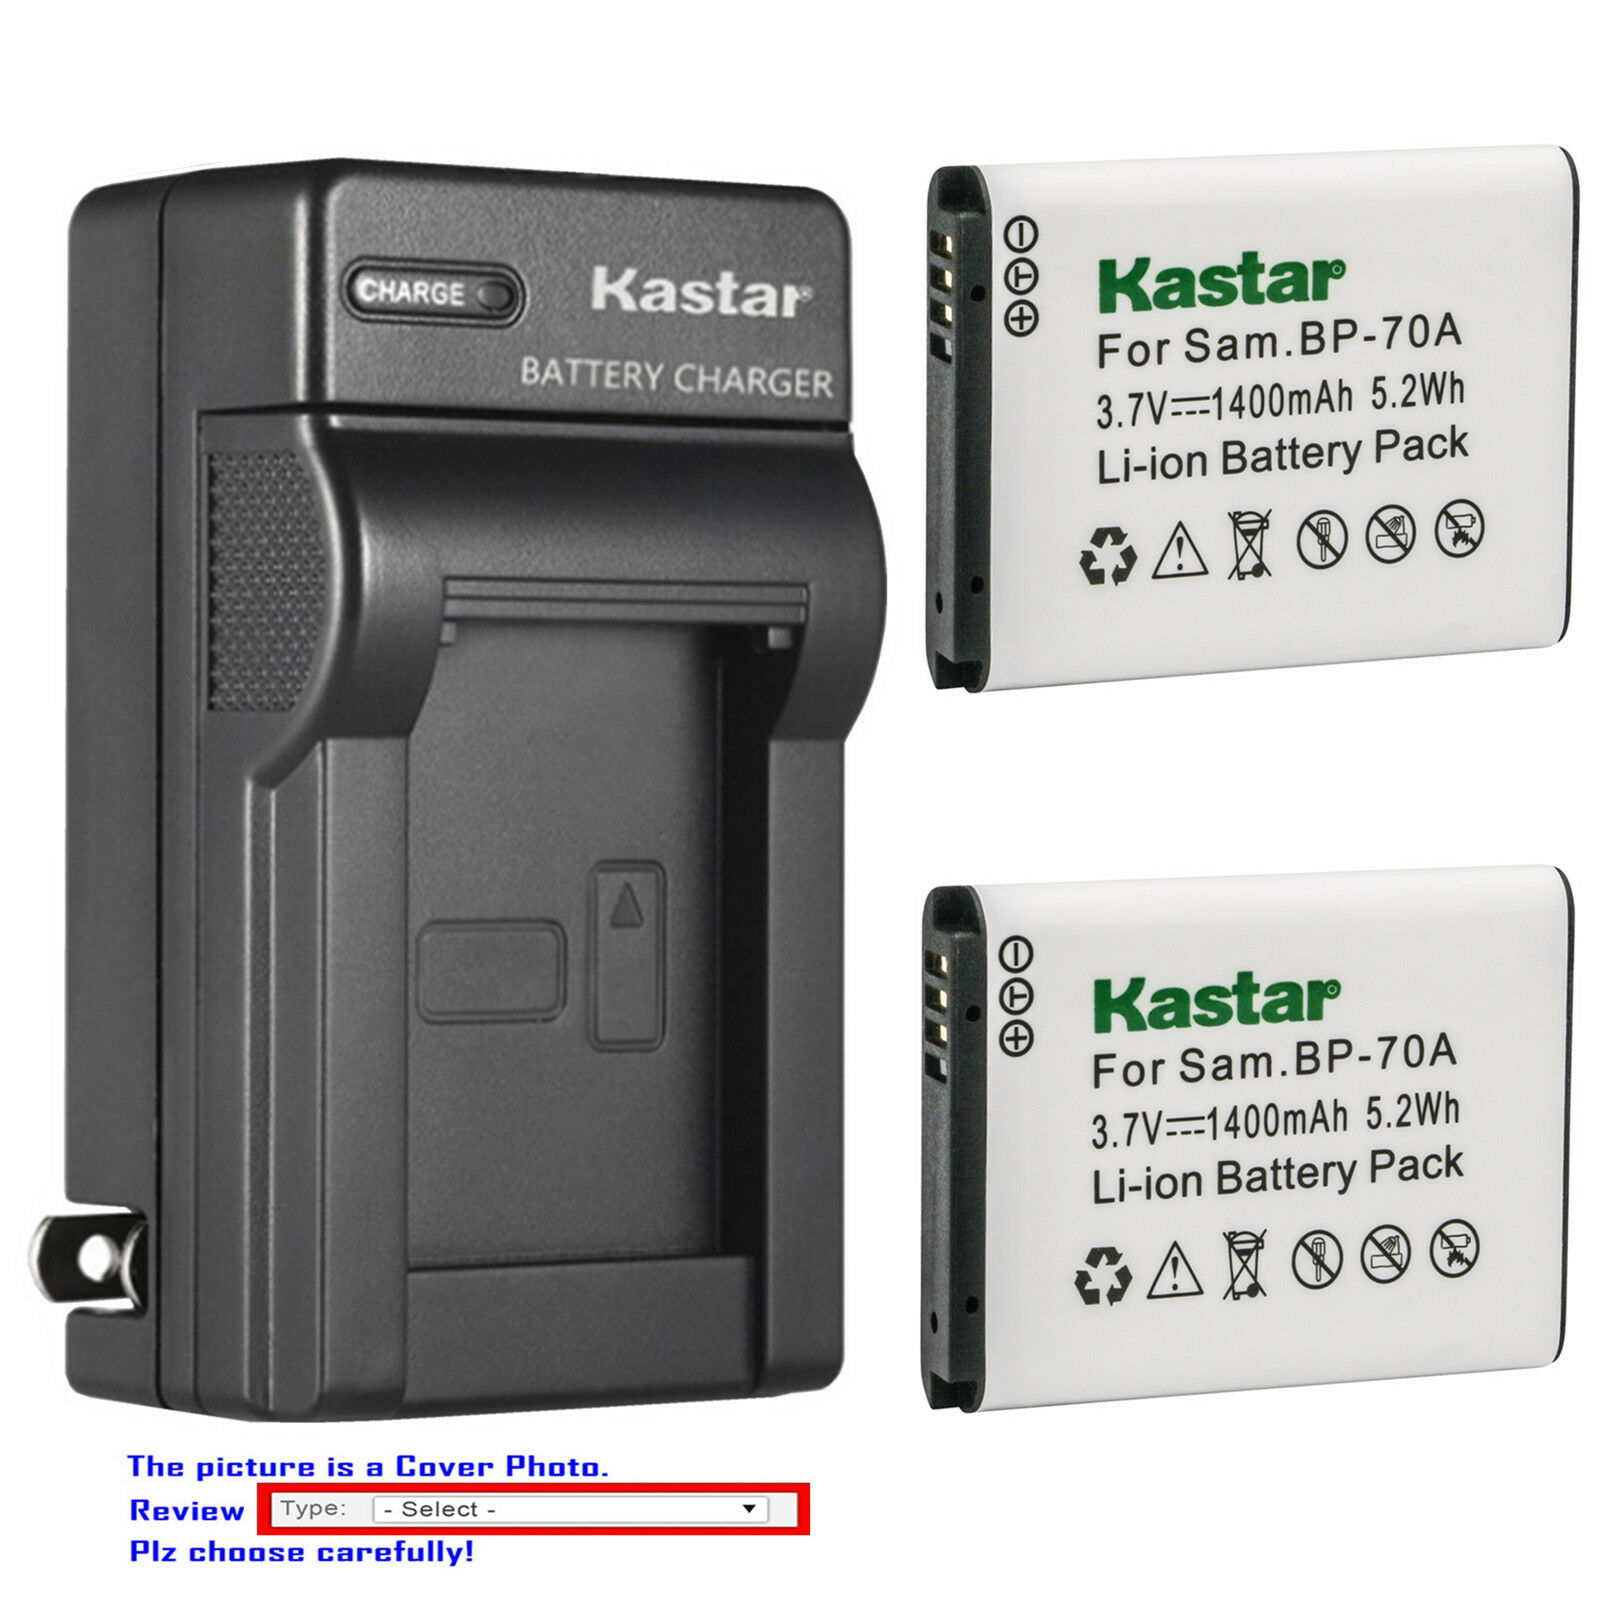 Kastar Battery AC Wall Charger for Samsung BP-70A & Samsung